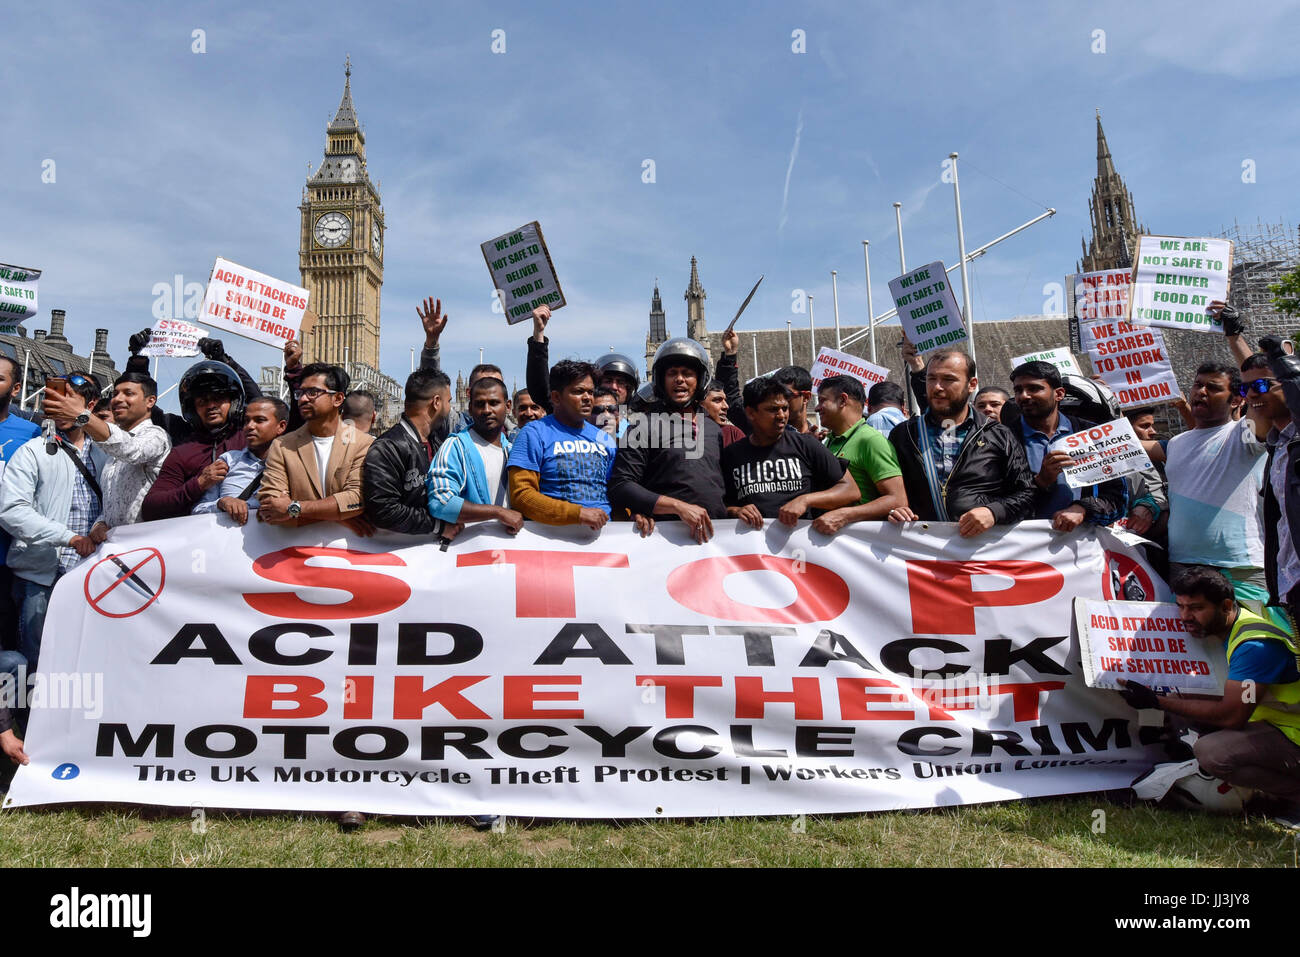 London, UK. 18th July, 2017. Moped riders stage a protest in Parliament Square demanding that the government act - Stock Image